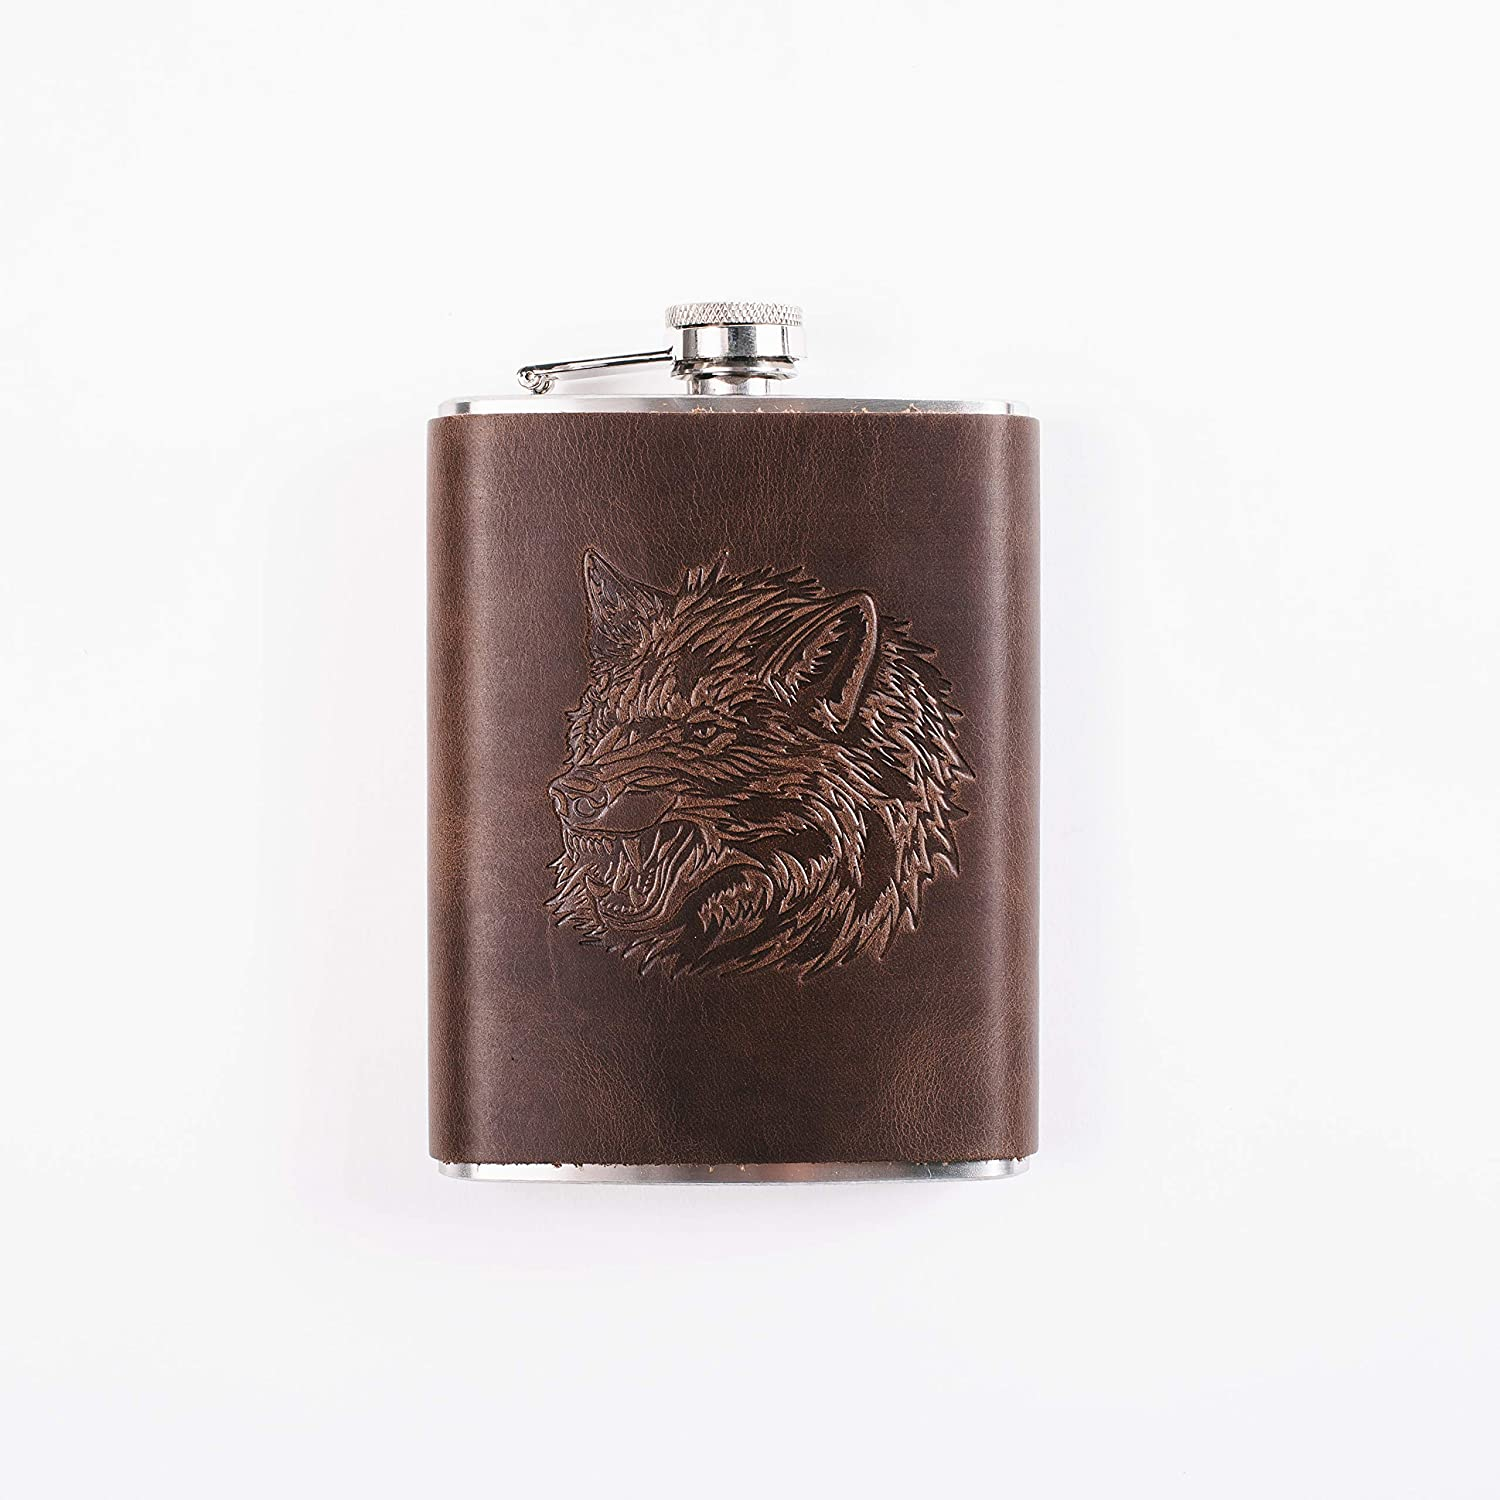 Hand Made Full Grain Leather Stainless Steel Flask Brown Leather Flask 8oz Wolf Hip Flask Flasks for Men 8 oz Unique Gift for Men Pocket Liquor Flask